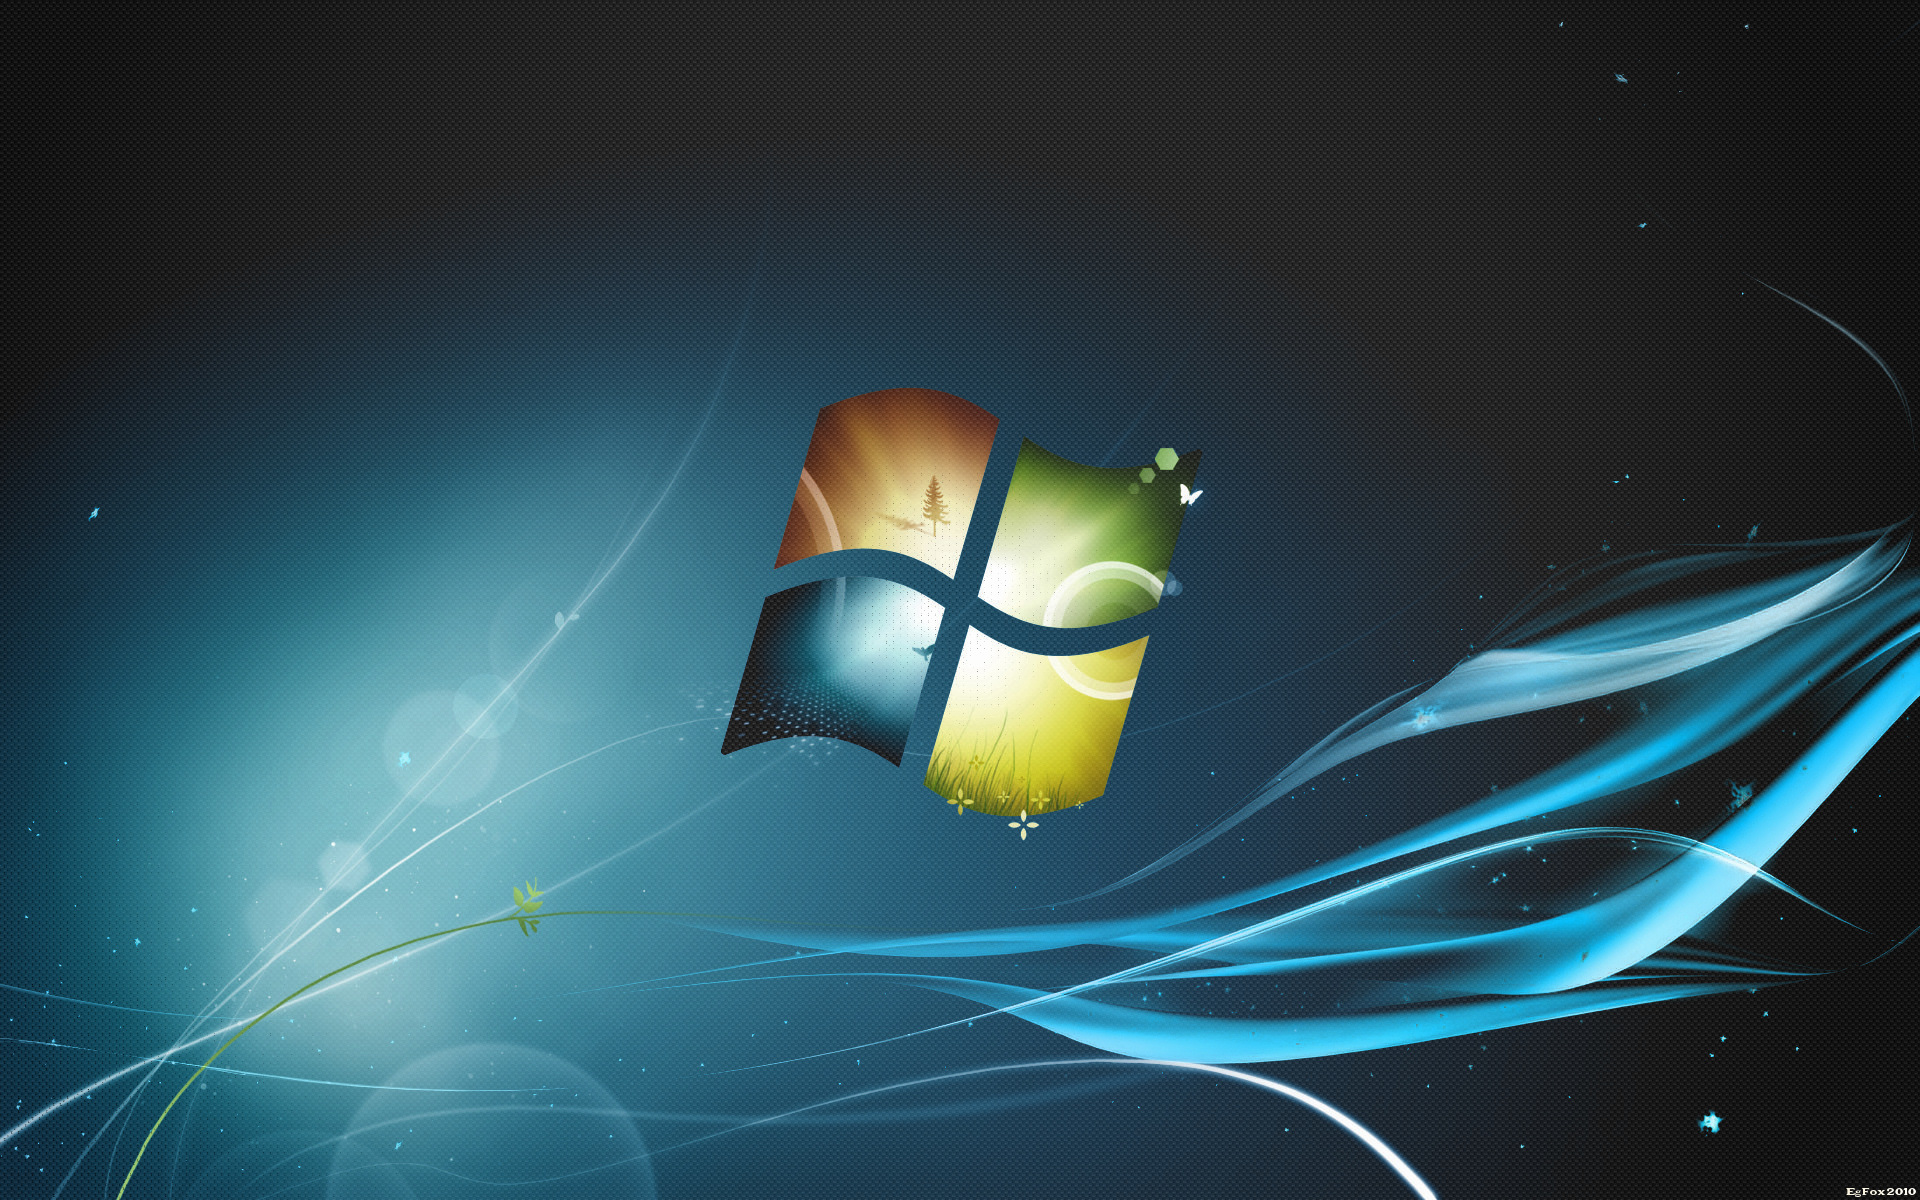 Hd wallpaper windows 7 - Windows 7 Backgrounds Hd Wallpapers Windows 7 Backgrounds Hd